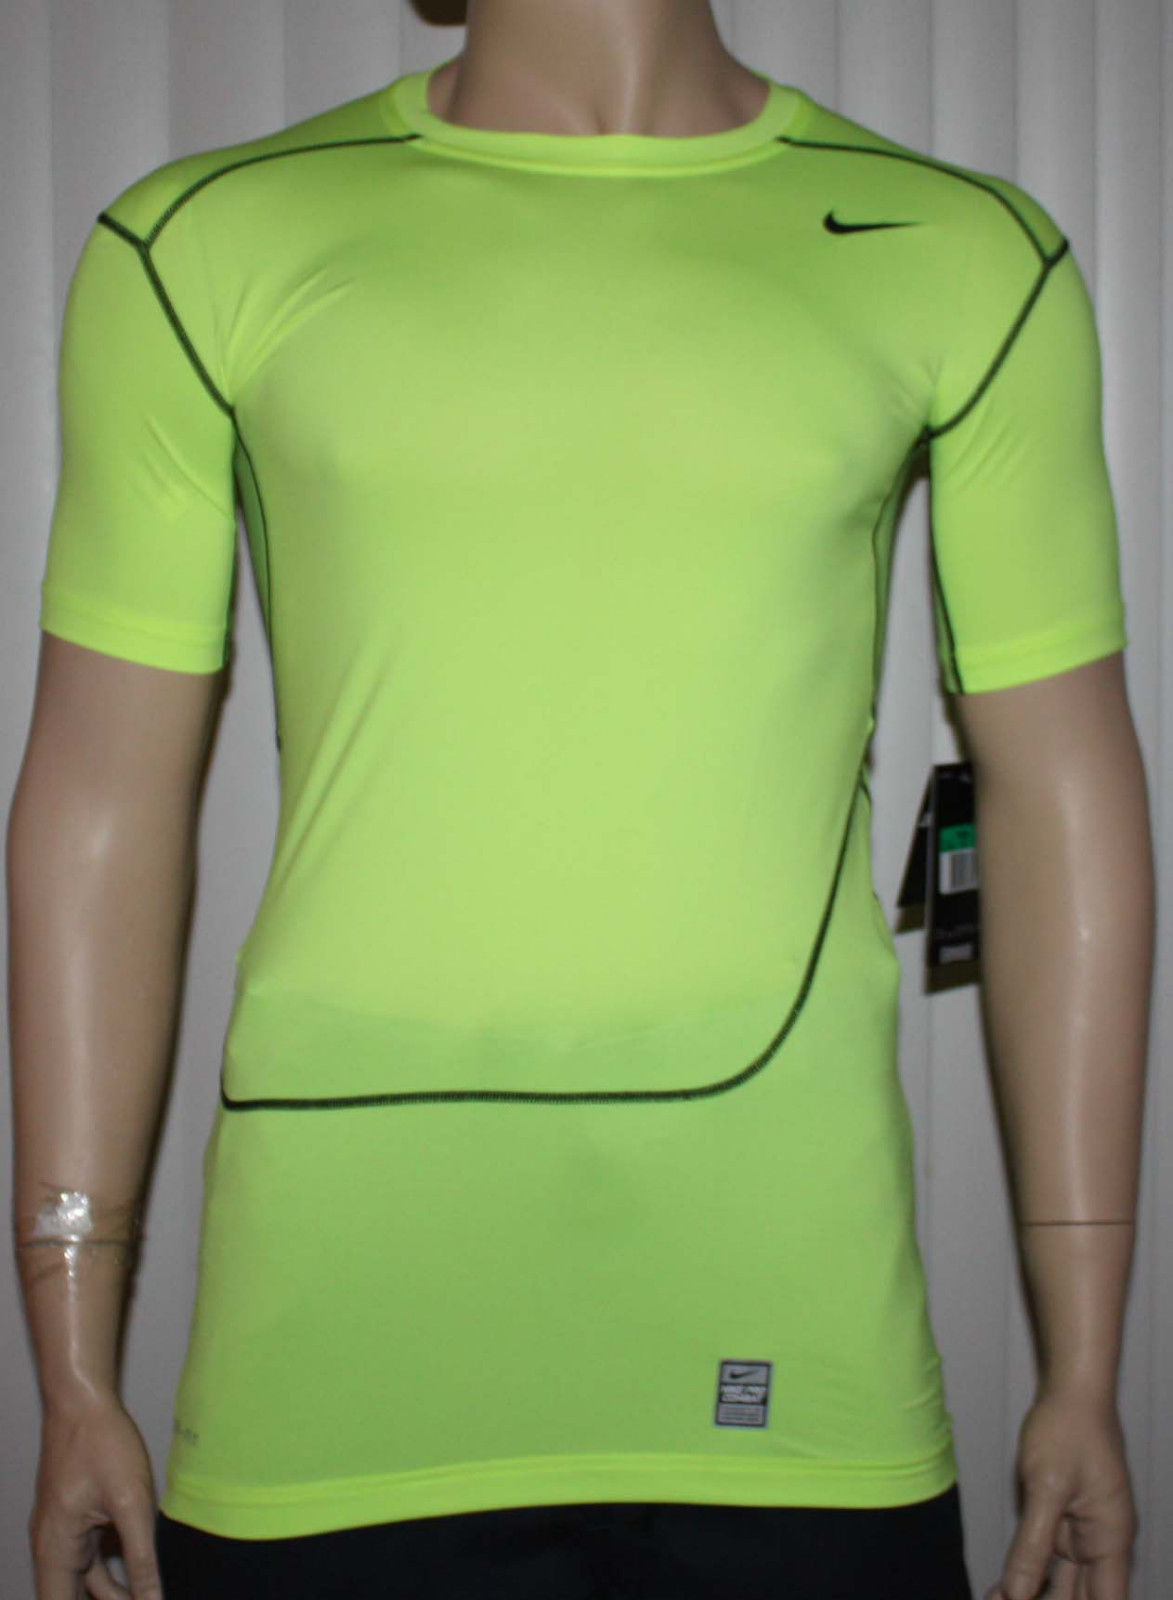 Nike Pro Nike Pro Combat Men's Dri-Fit Volt/Black Swoosh Compression Shirt -X-Large 10398